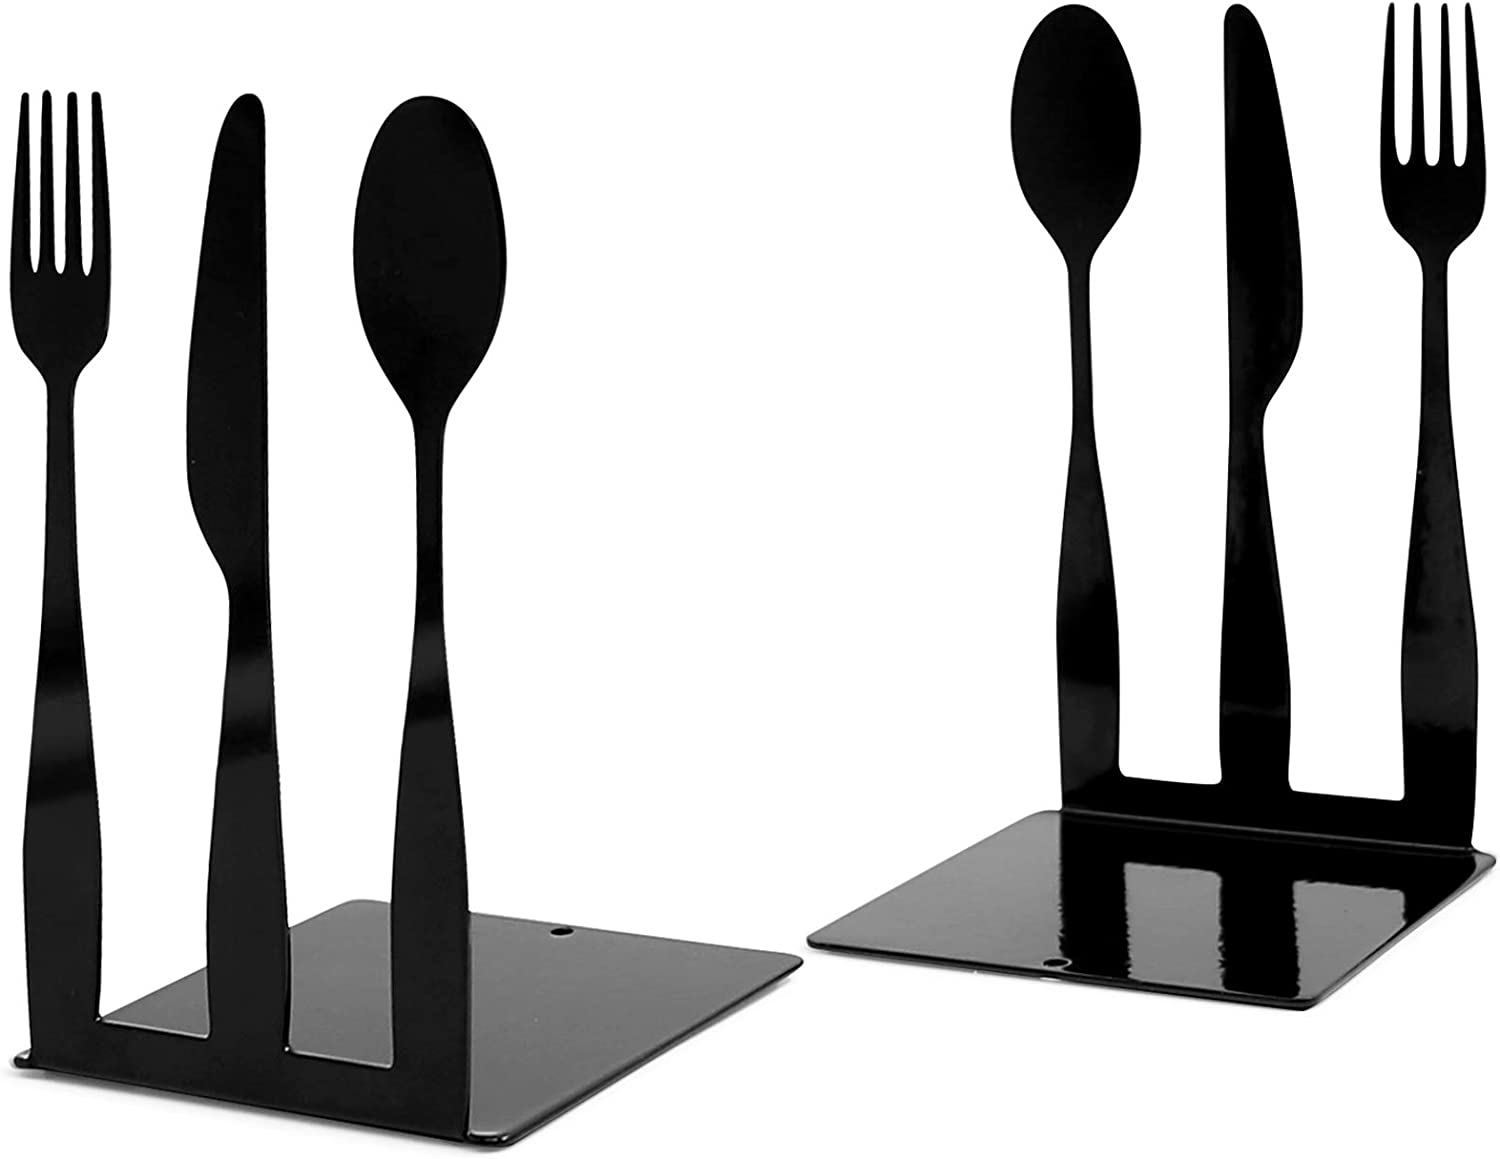 Huray Rayho Cookbook Bookends, Fork Knife Spoon Kitchen Metal Cookbook Storage Modern Functional Kitchen Book Holders Chef Cook Housewarming Gift, Set of 2